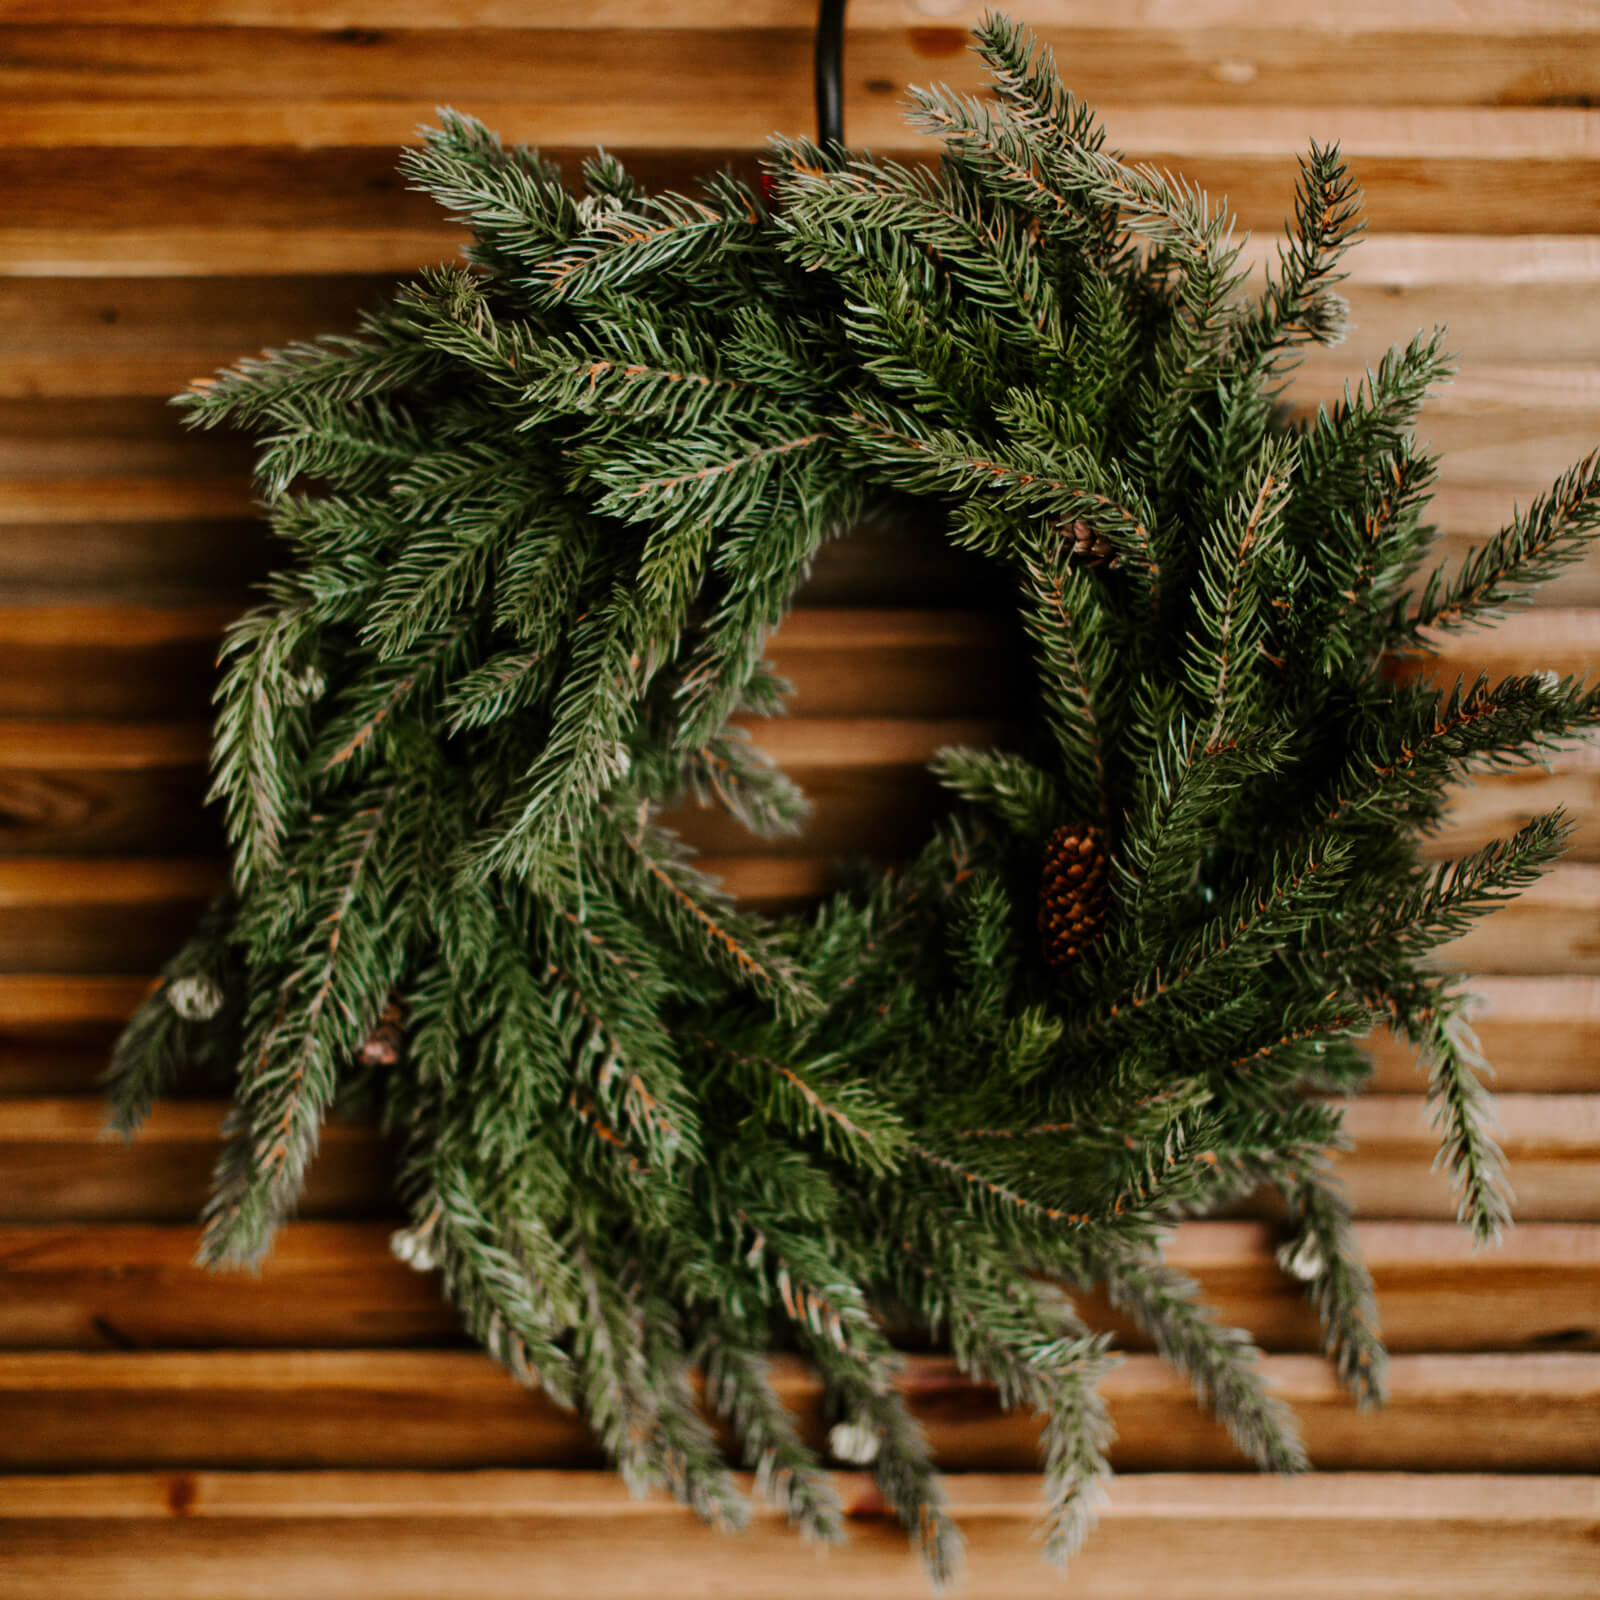 A grand and classic 17 inch faux Spruce wreath with real pinecones hung on a wooden door for winter decorating